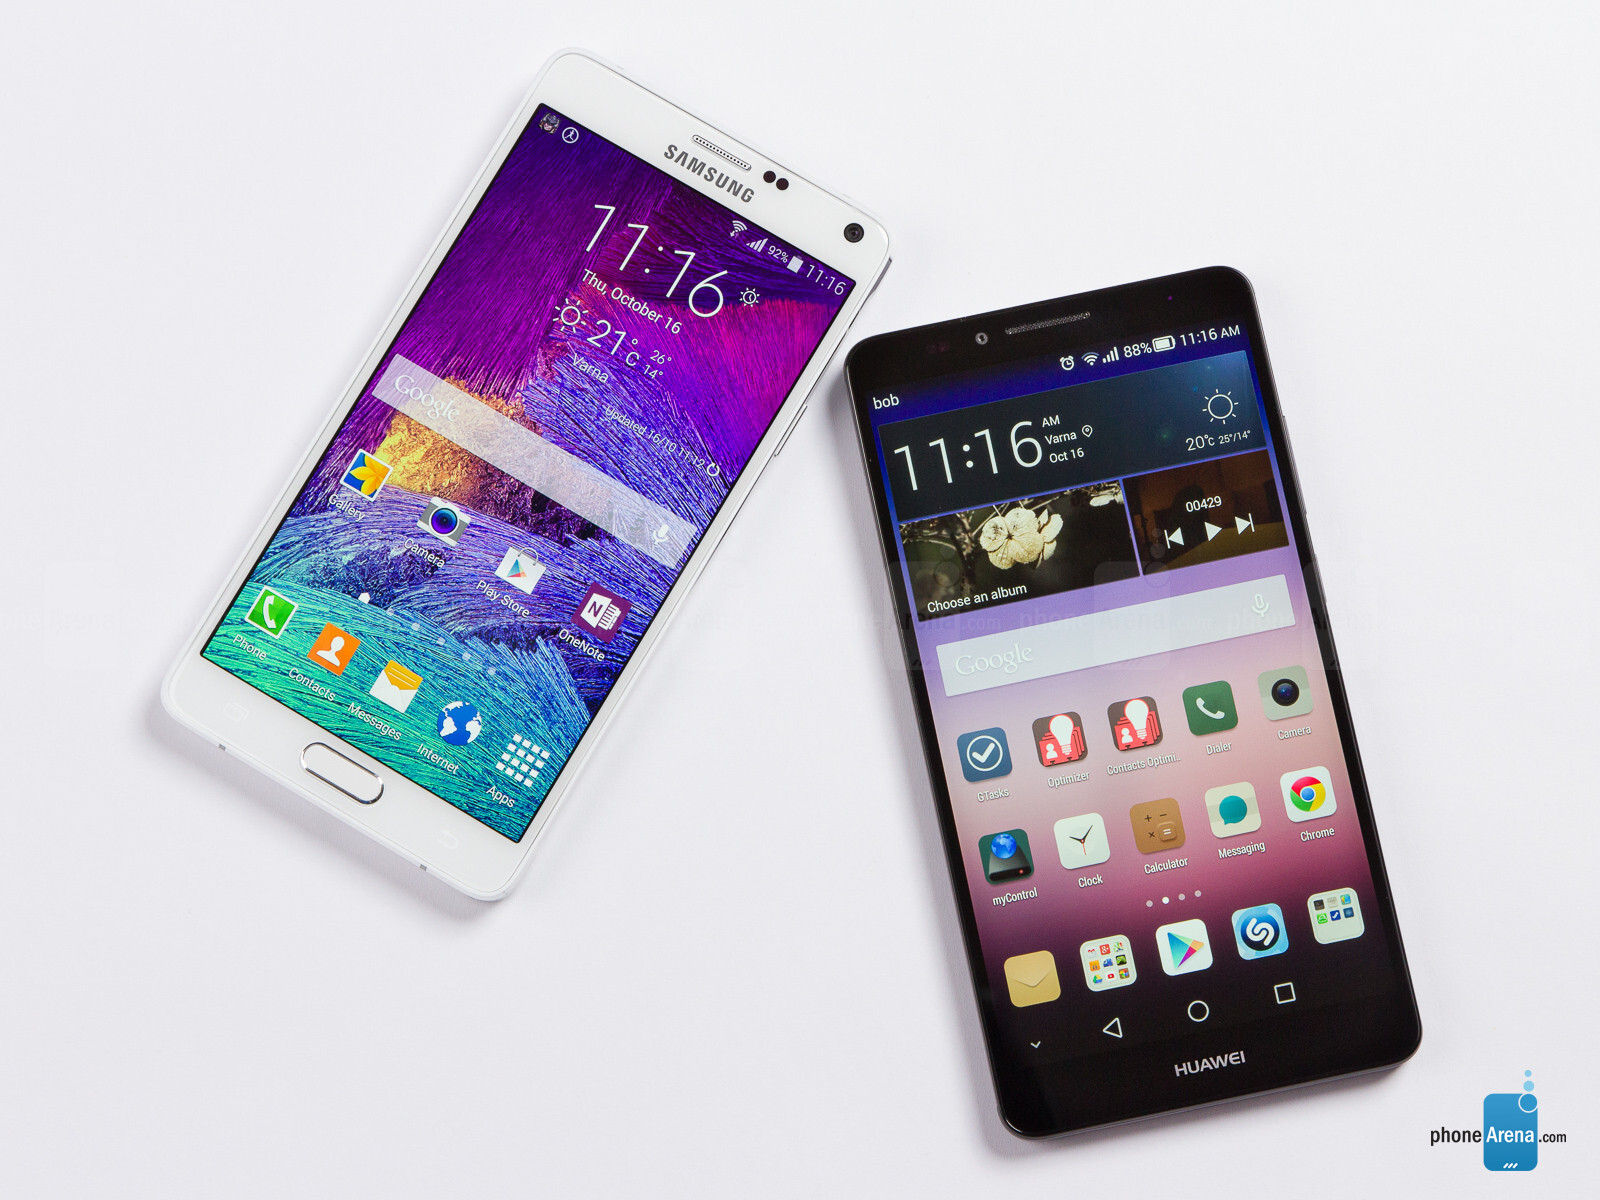 samsung galaxy note 4 vs huawei ascend mate7. Black Bedroom Furniture Sets. Home Design Ideas